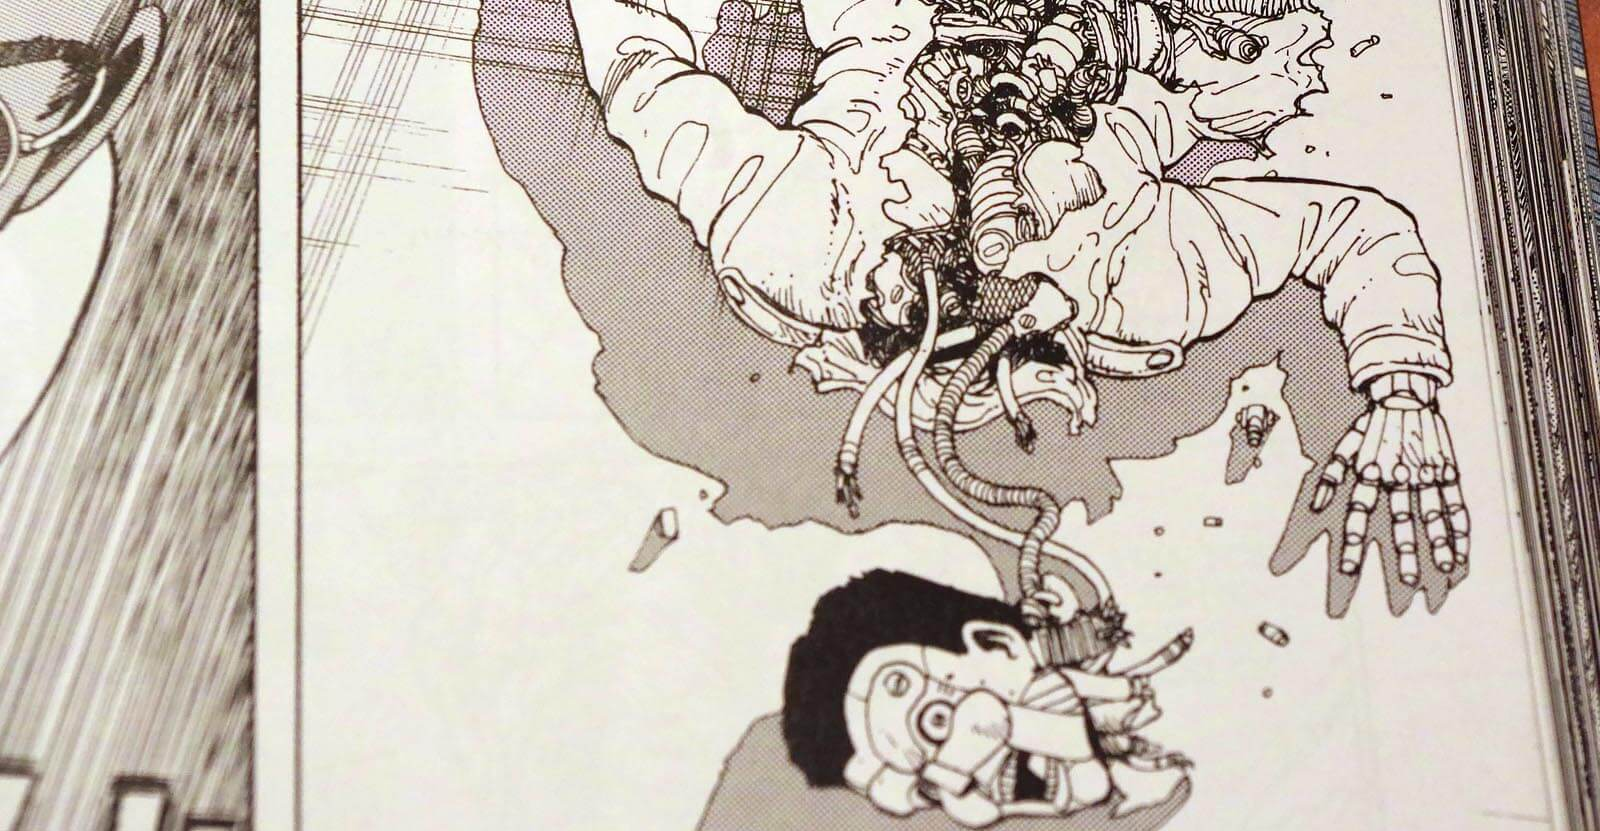 Battle Angel Alita Vol 1 Robot Gore